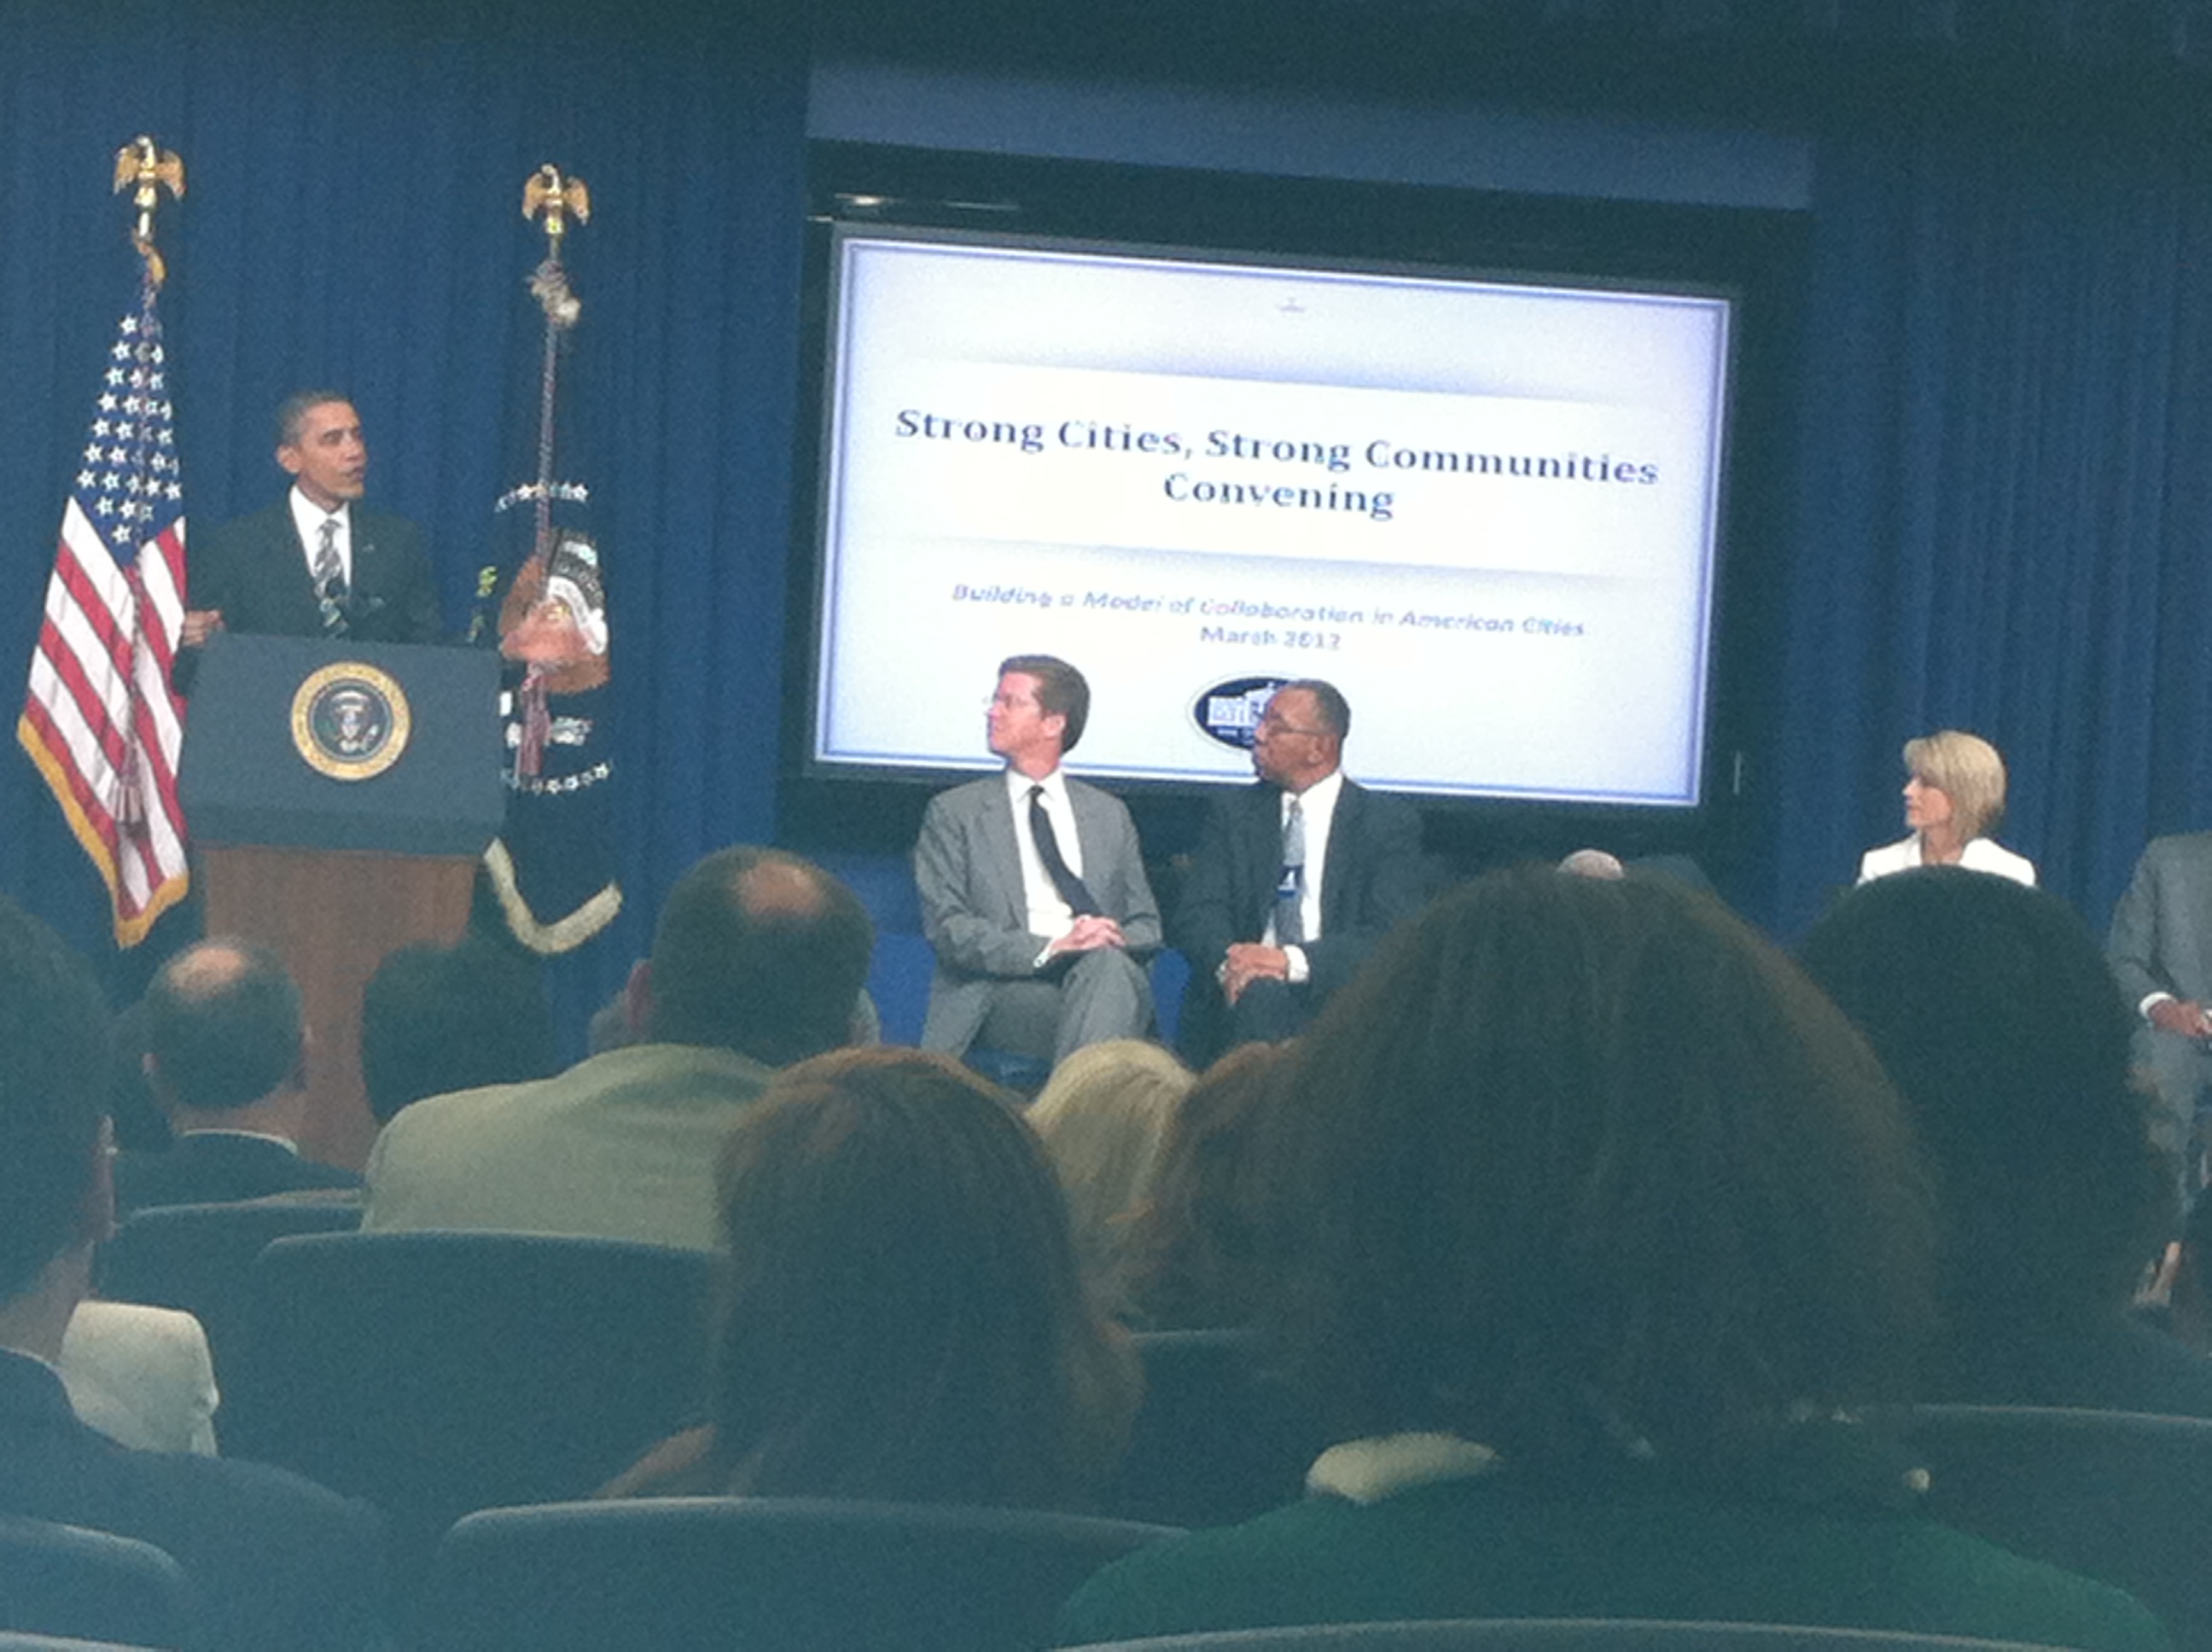 Strong Cities, Strong Communities White House Convening